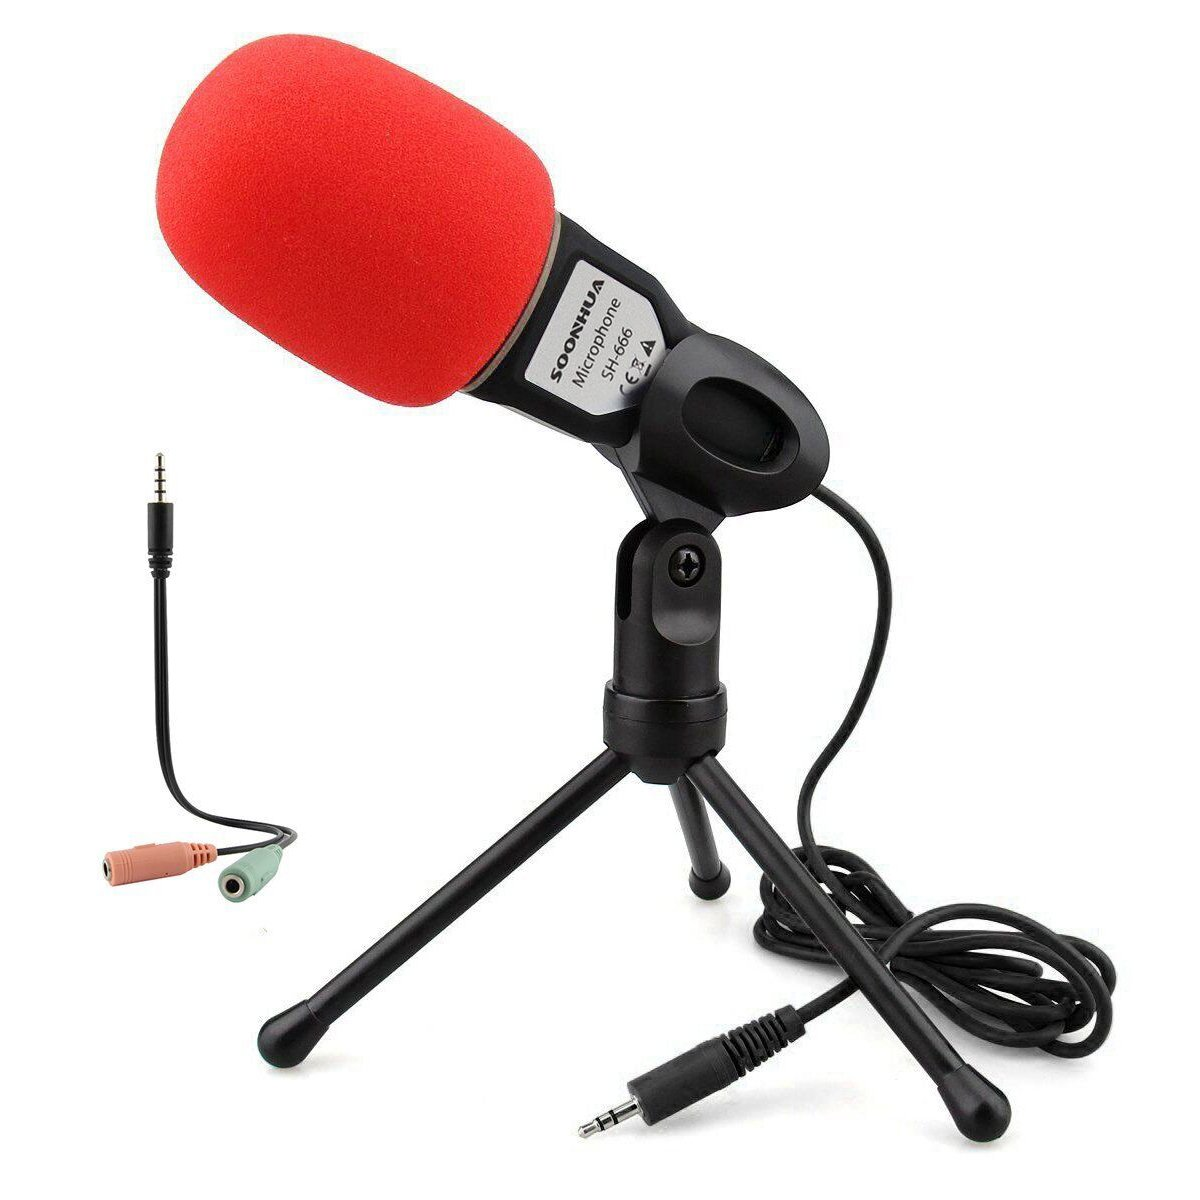 Condenser Microphone,Computer Microphone,SOONHUA 3.5MM Plug&Play Omnidirectional Mic with Desktop Stand for Gaming,YouTube Video,Recording Podcast,Studio,for PC,Laptop,Tablet,Phone by SOONHUA